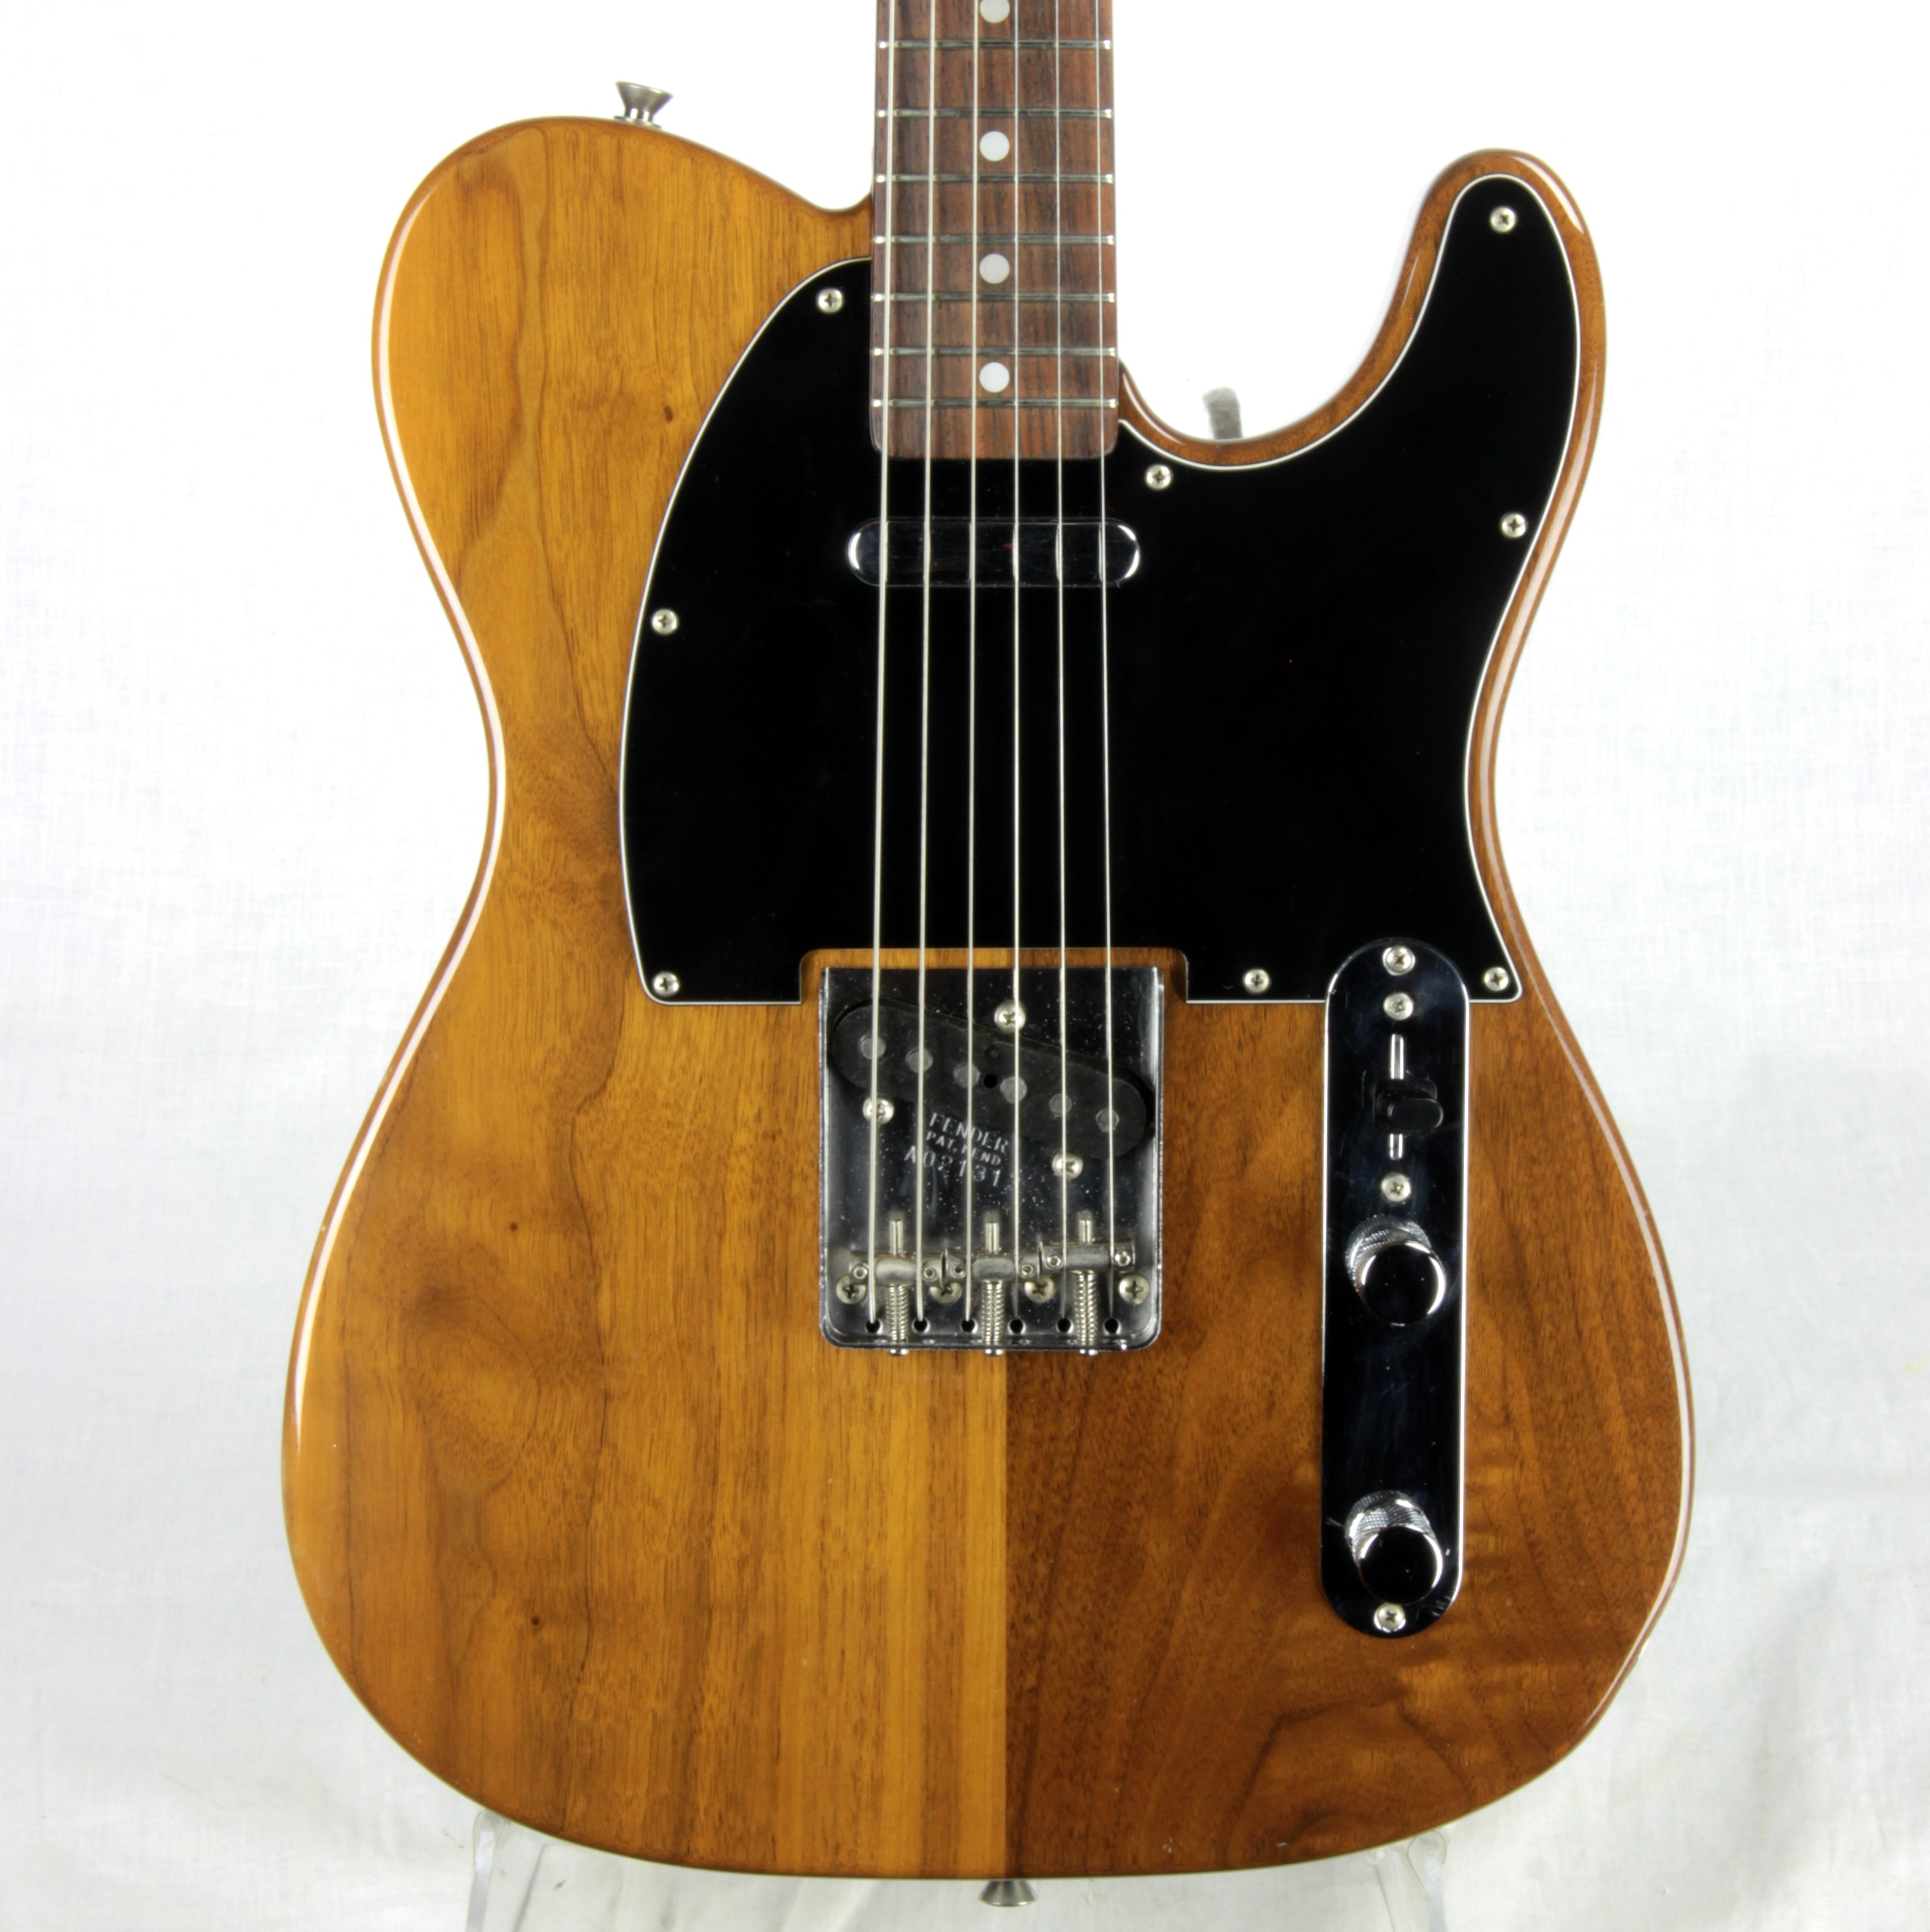 RARE Fender Japan '68 Reissue ALL WALNUT Telecaster TL68 Rosewood CIJ USA Texas Special Pickups! Tele